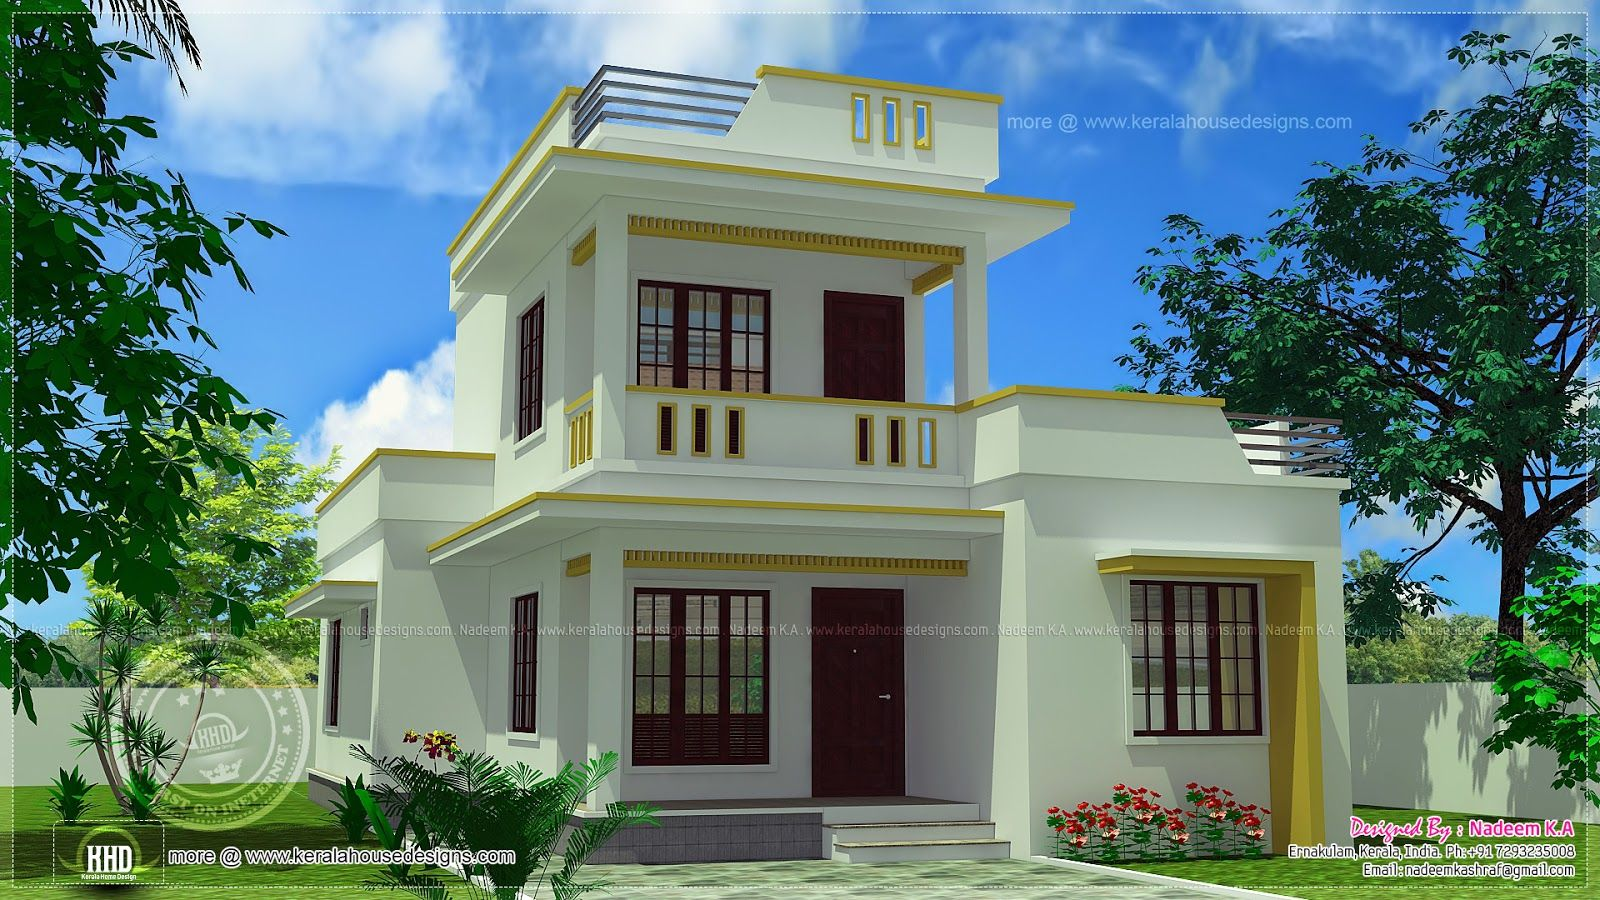 Roof home design feet kerala plans simple modern house for Modern home building plans